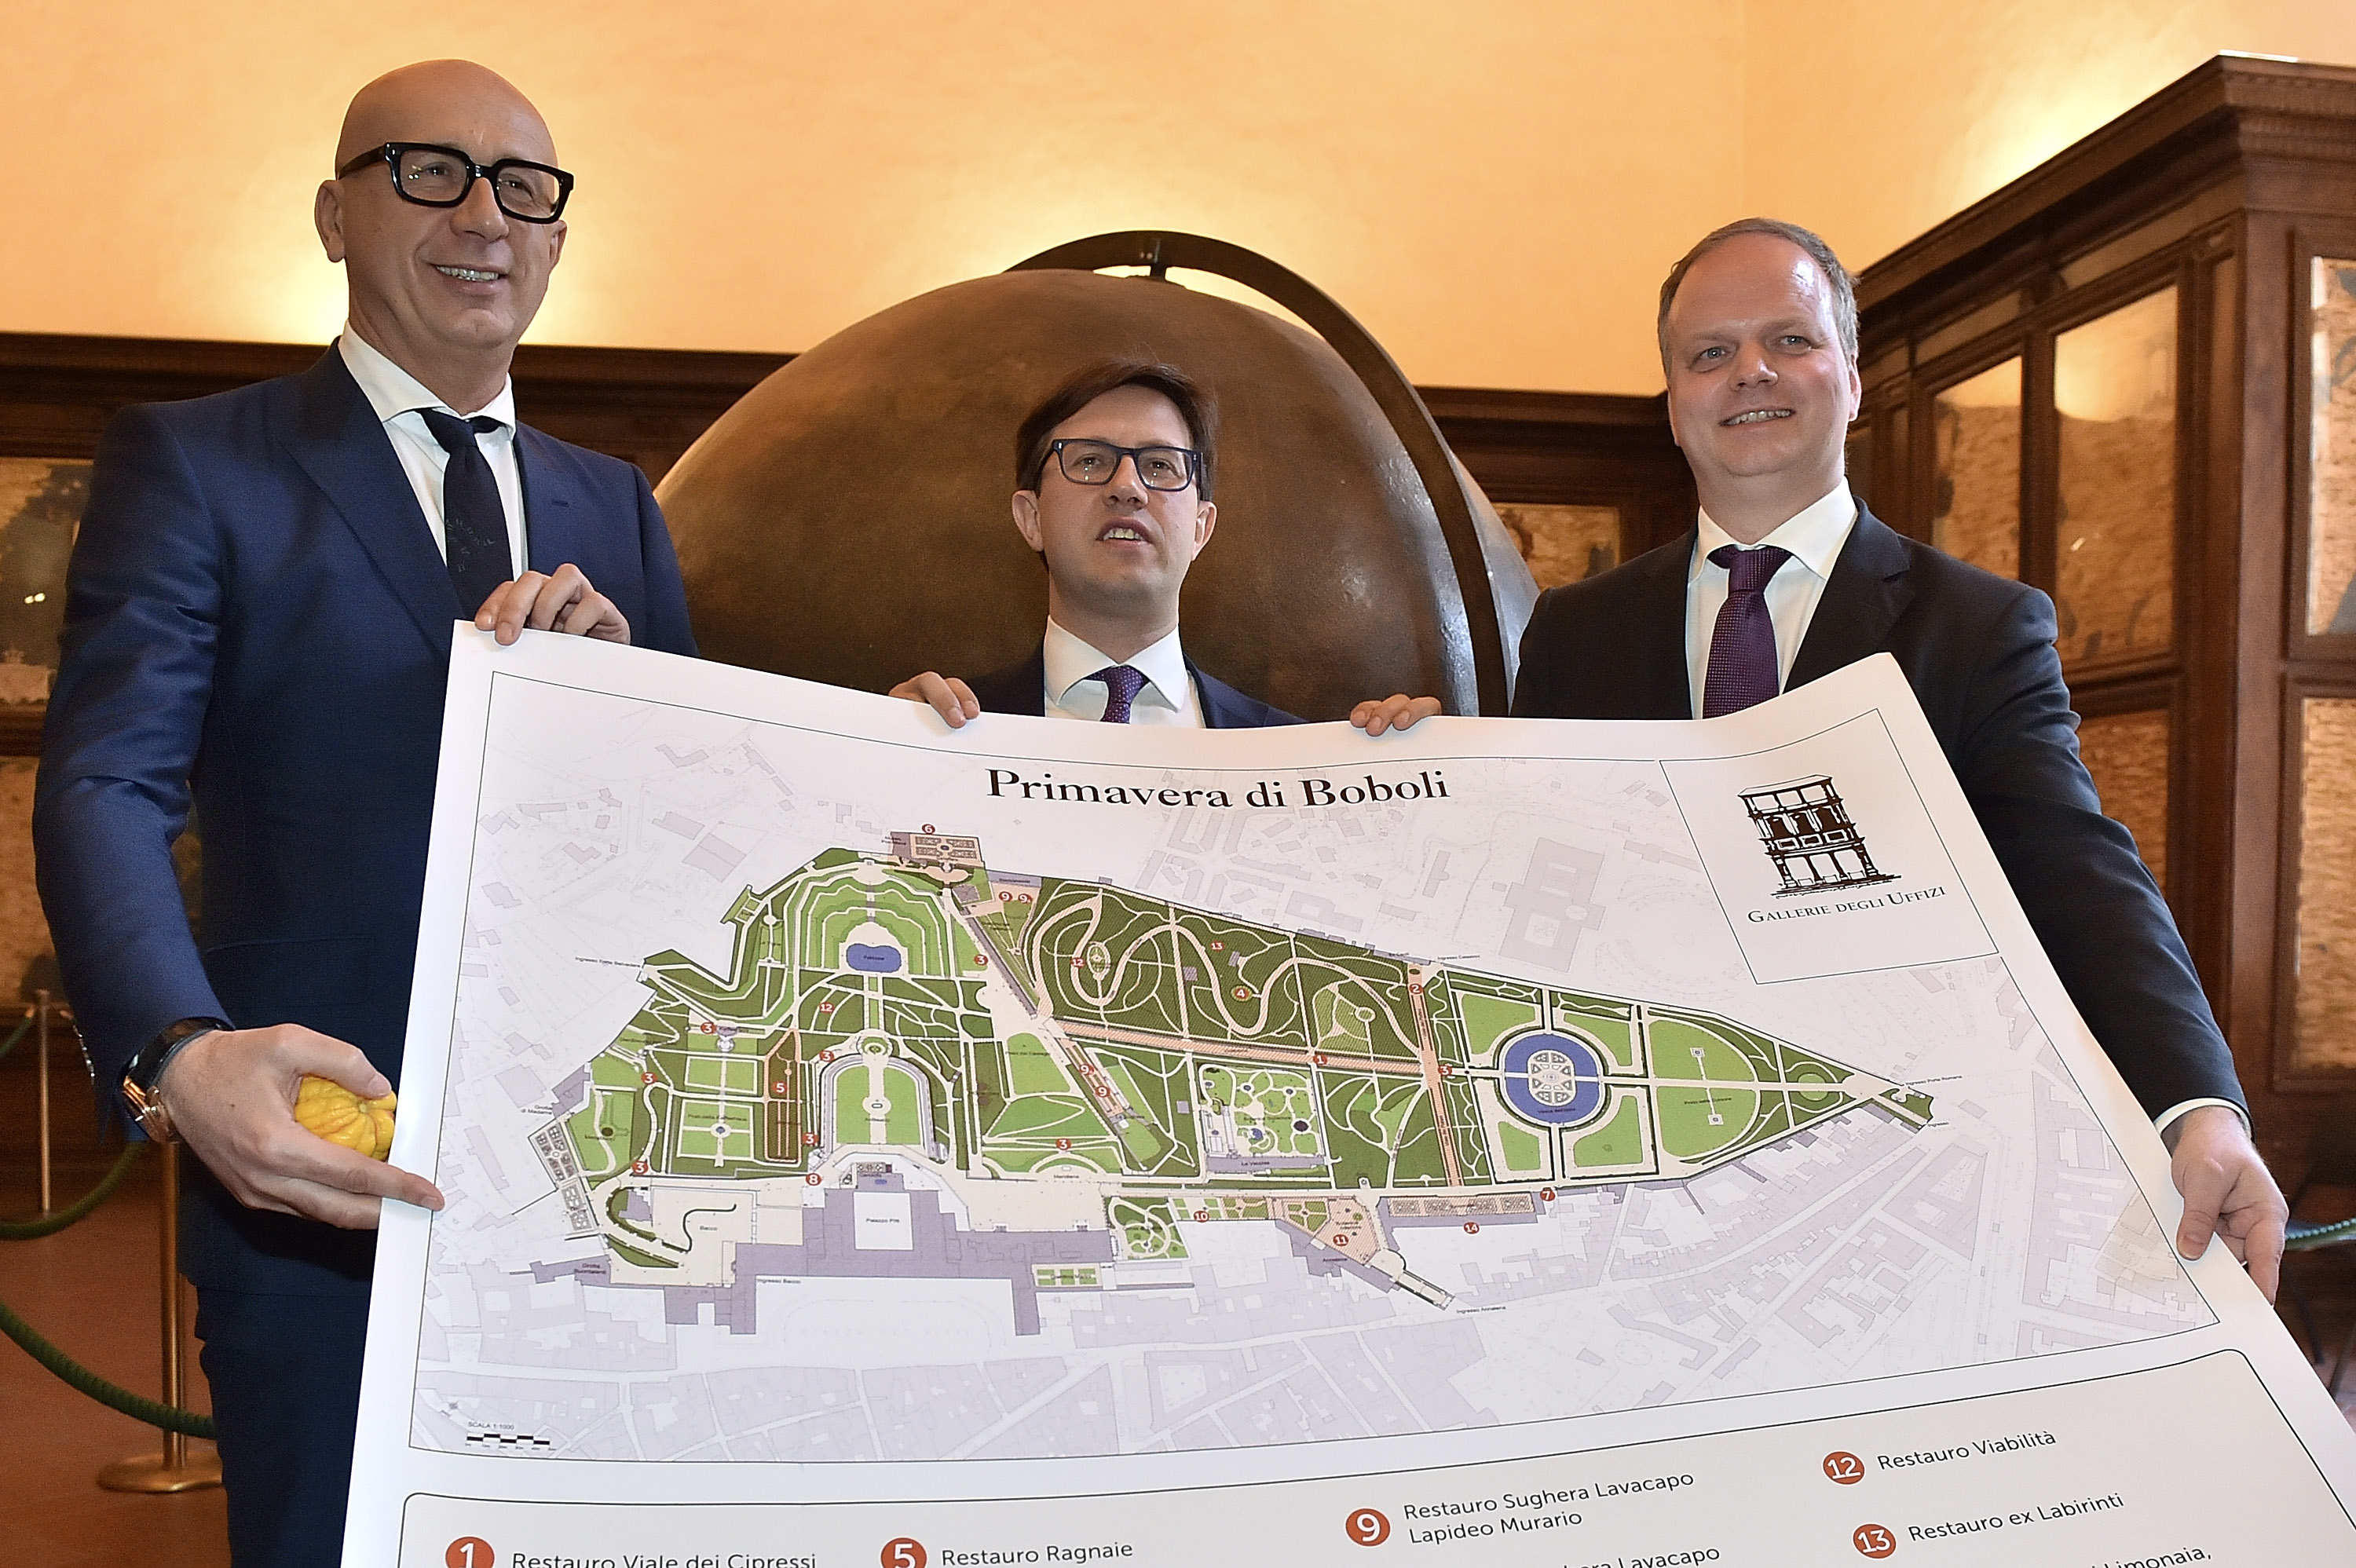 President & CEO của Gucci, ông Marco Bizzarri, Dario Nardella, Major of Florence and Eike Schmidt, Giám đốc của bảo tàng Uffizzi tham dự buổi họp báo công bố show diễn Gucci Cruise 2018 vào ngày 4–4, 2017 in Florence, Italy. (Photo by Tullio M. Puglia/Getty Images for Gucci)